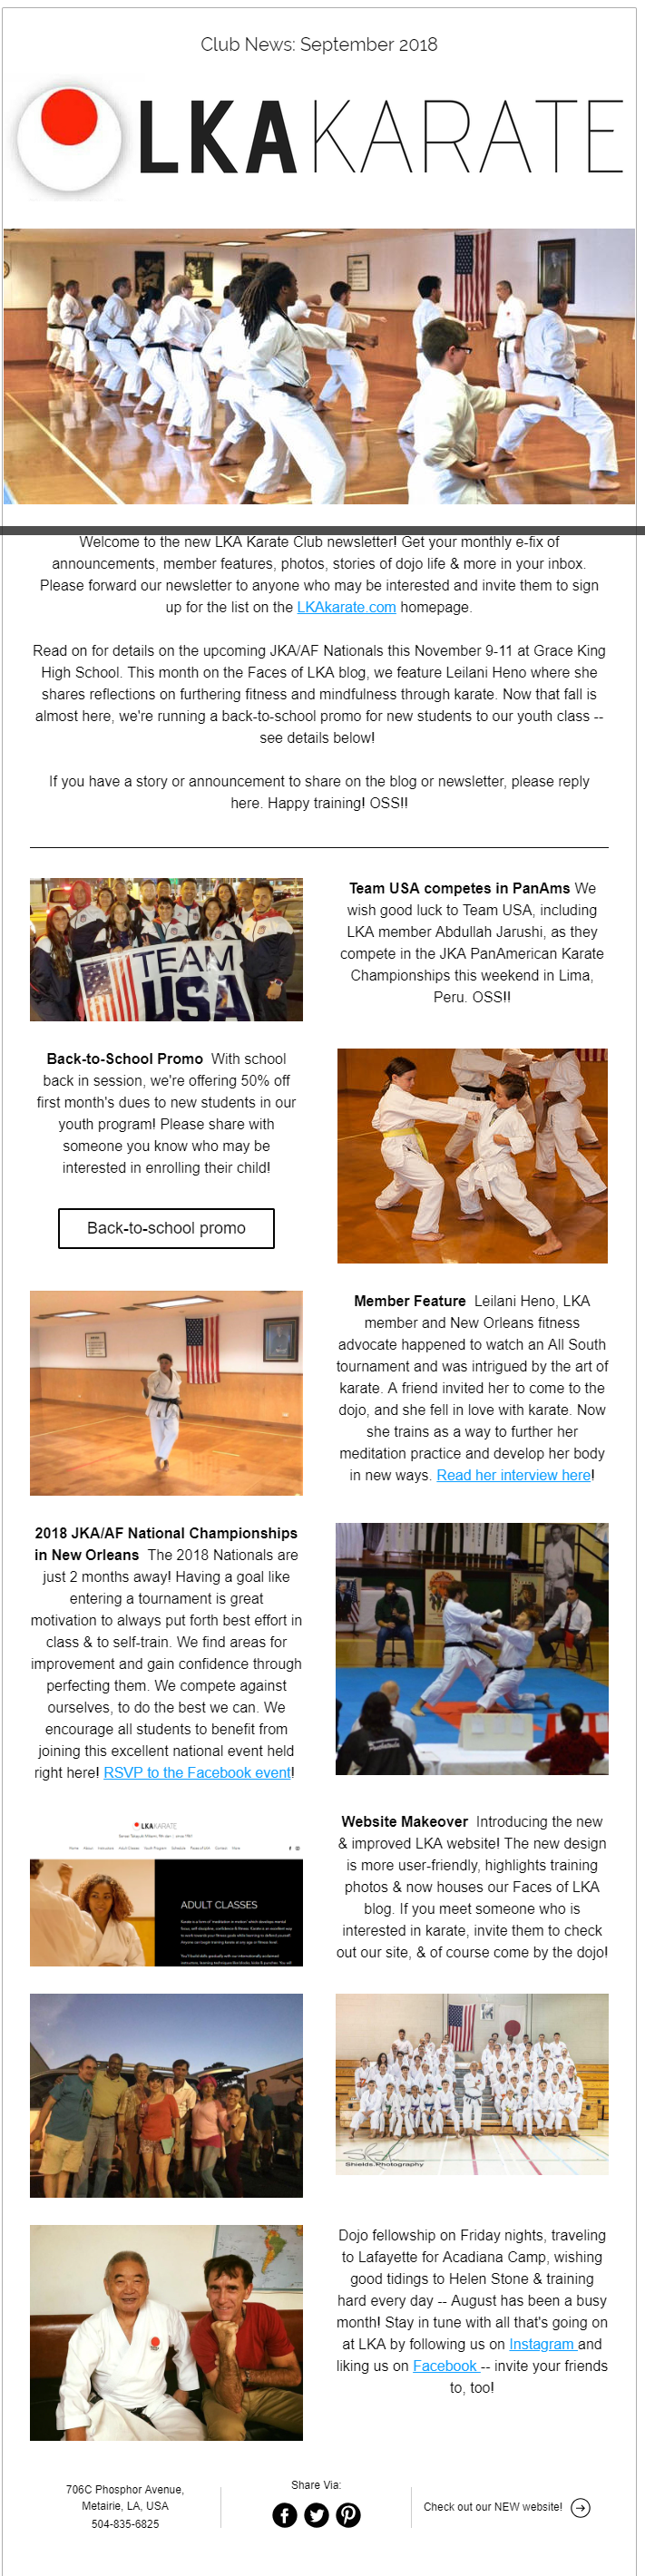 Louisiana Karate Club shares Shotokan news & events in Metairie.